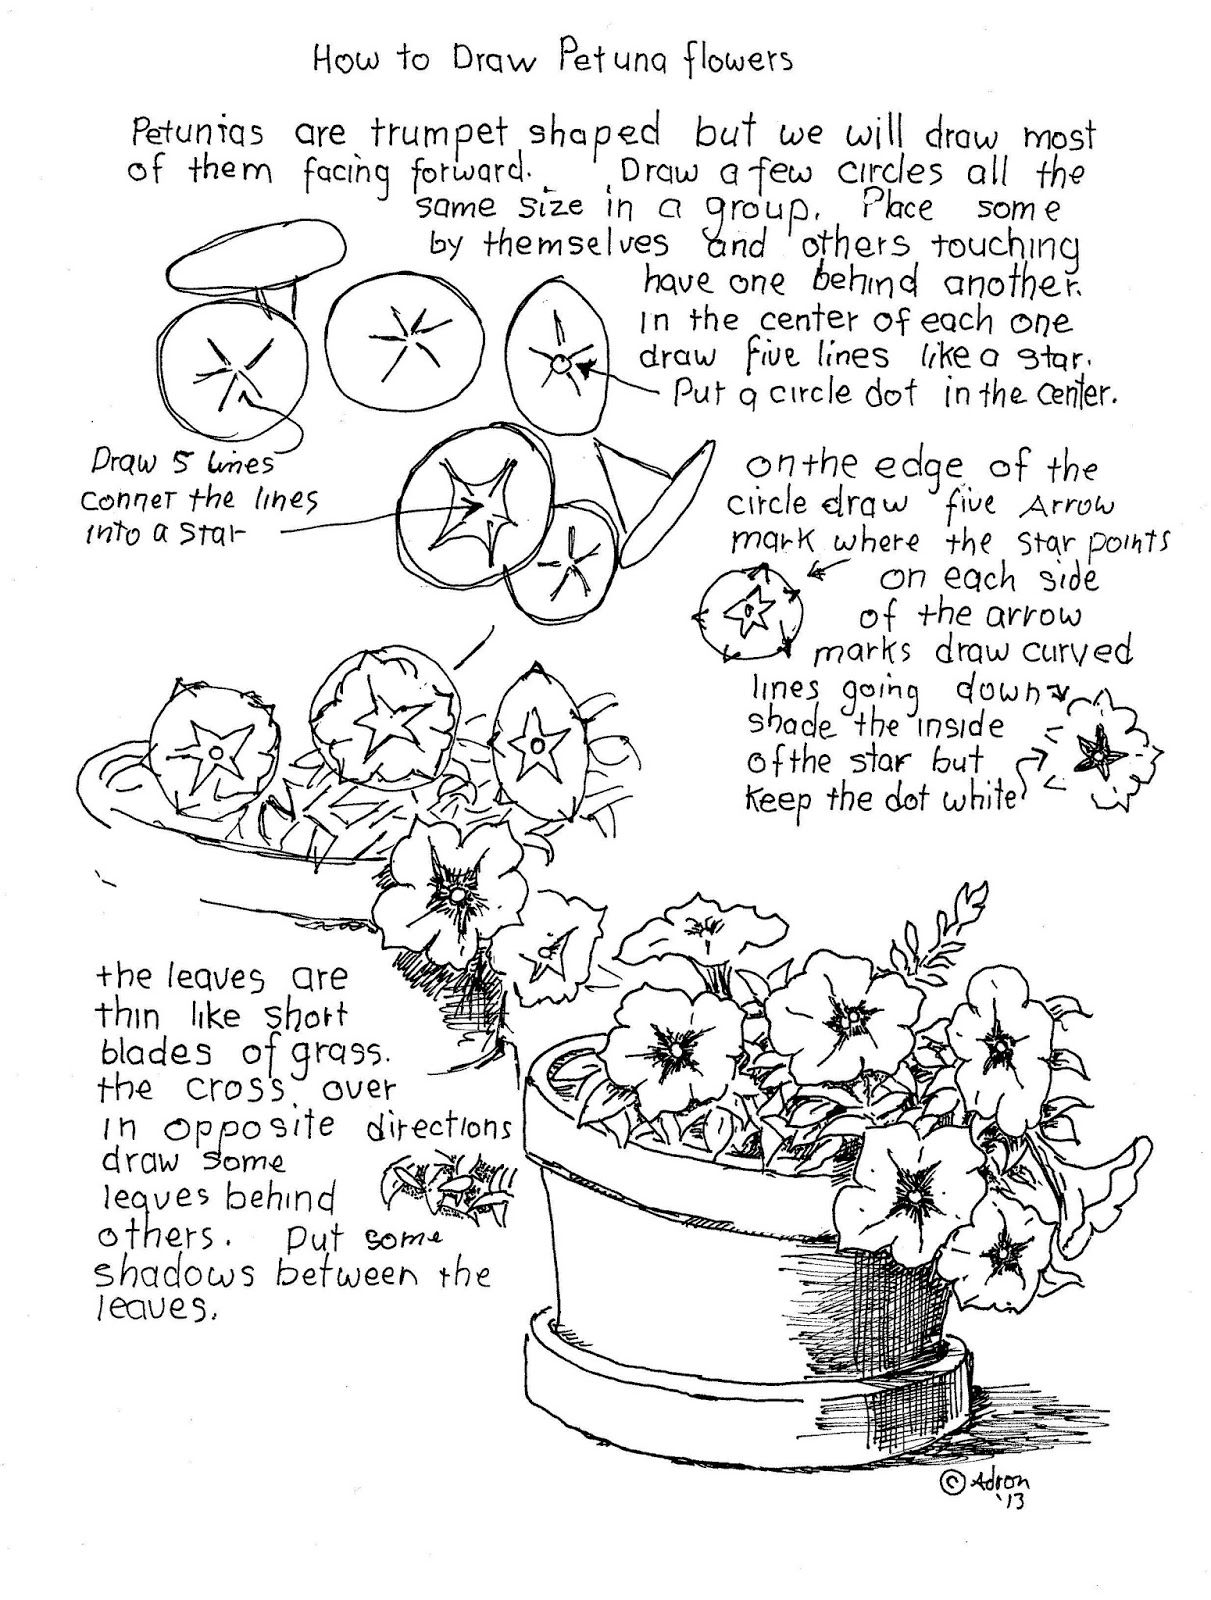 How To Draw Worksheets For The Young Artist How To Draw Petunia Flowers Worksheet